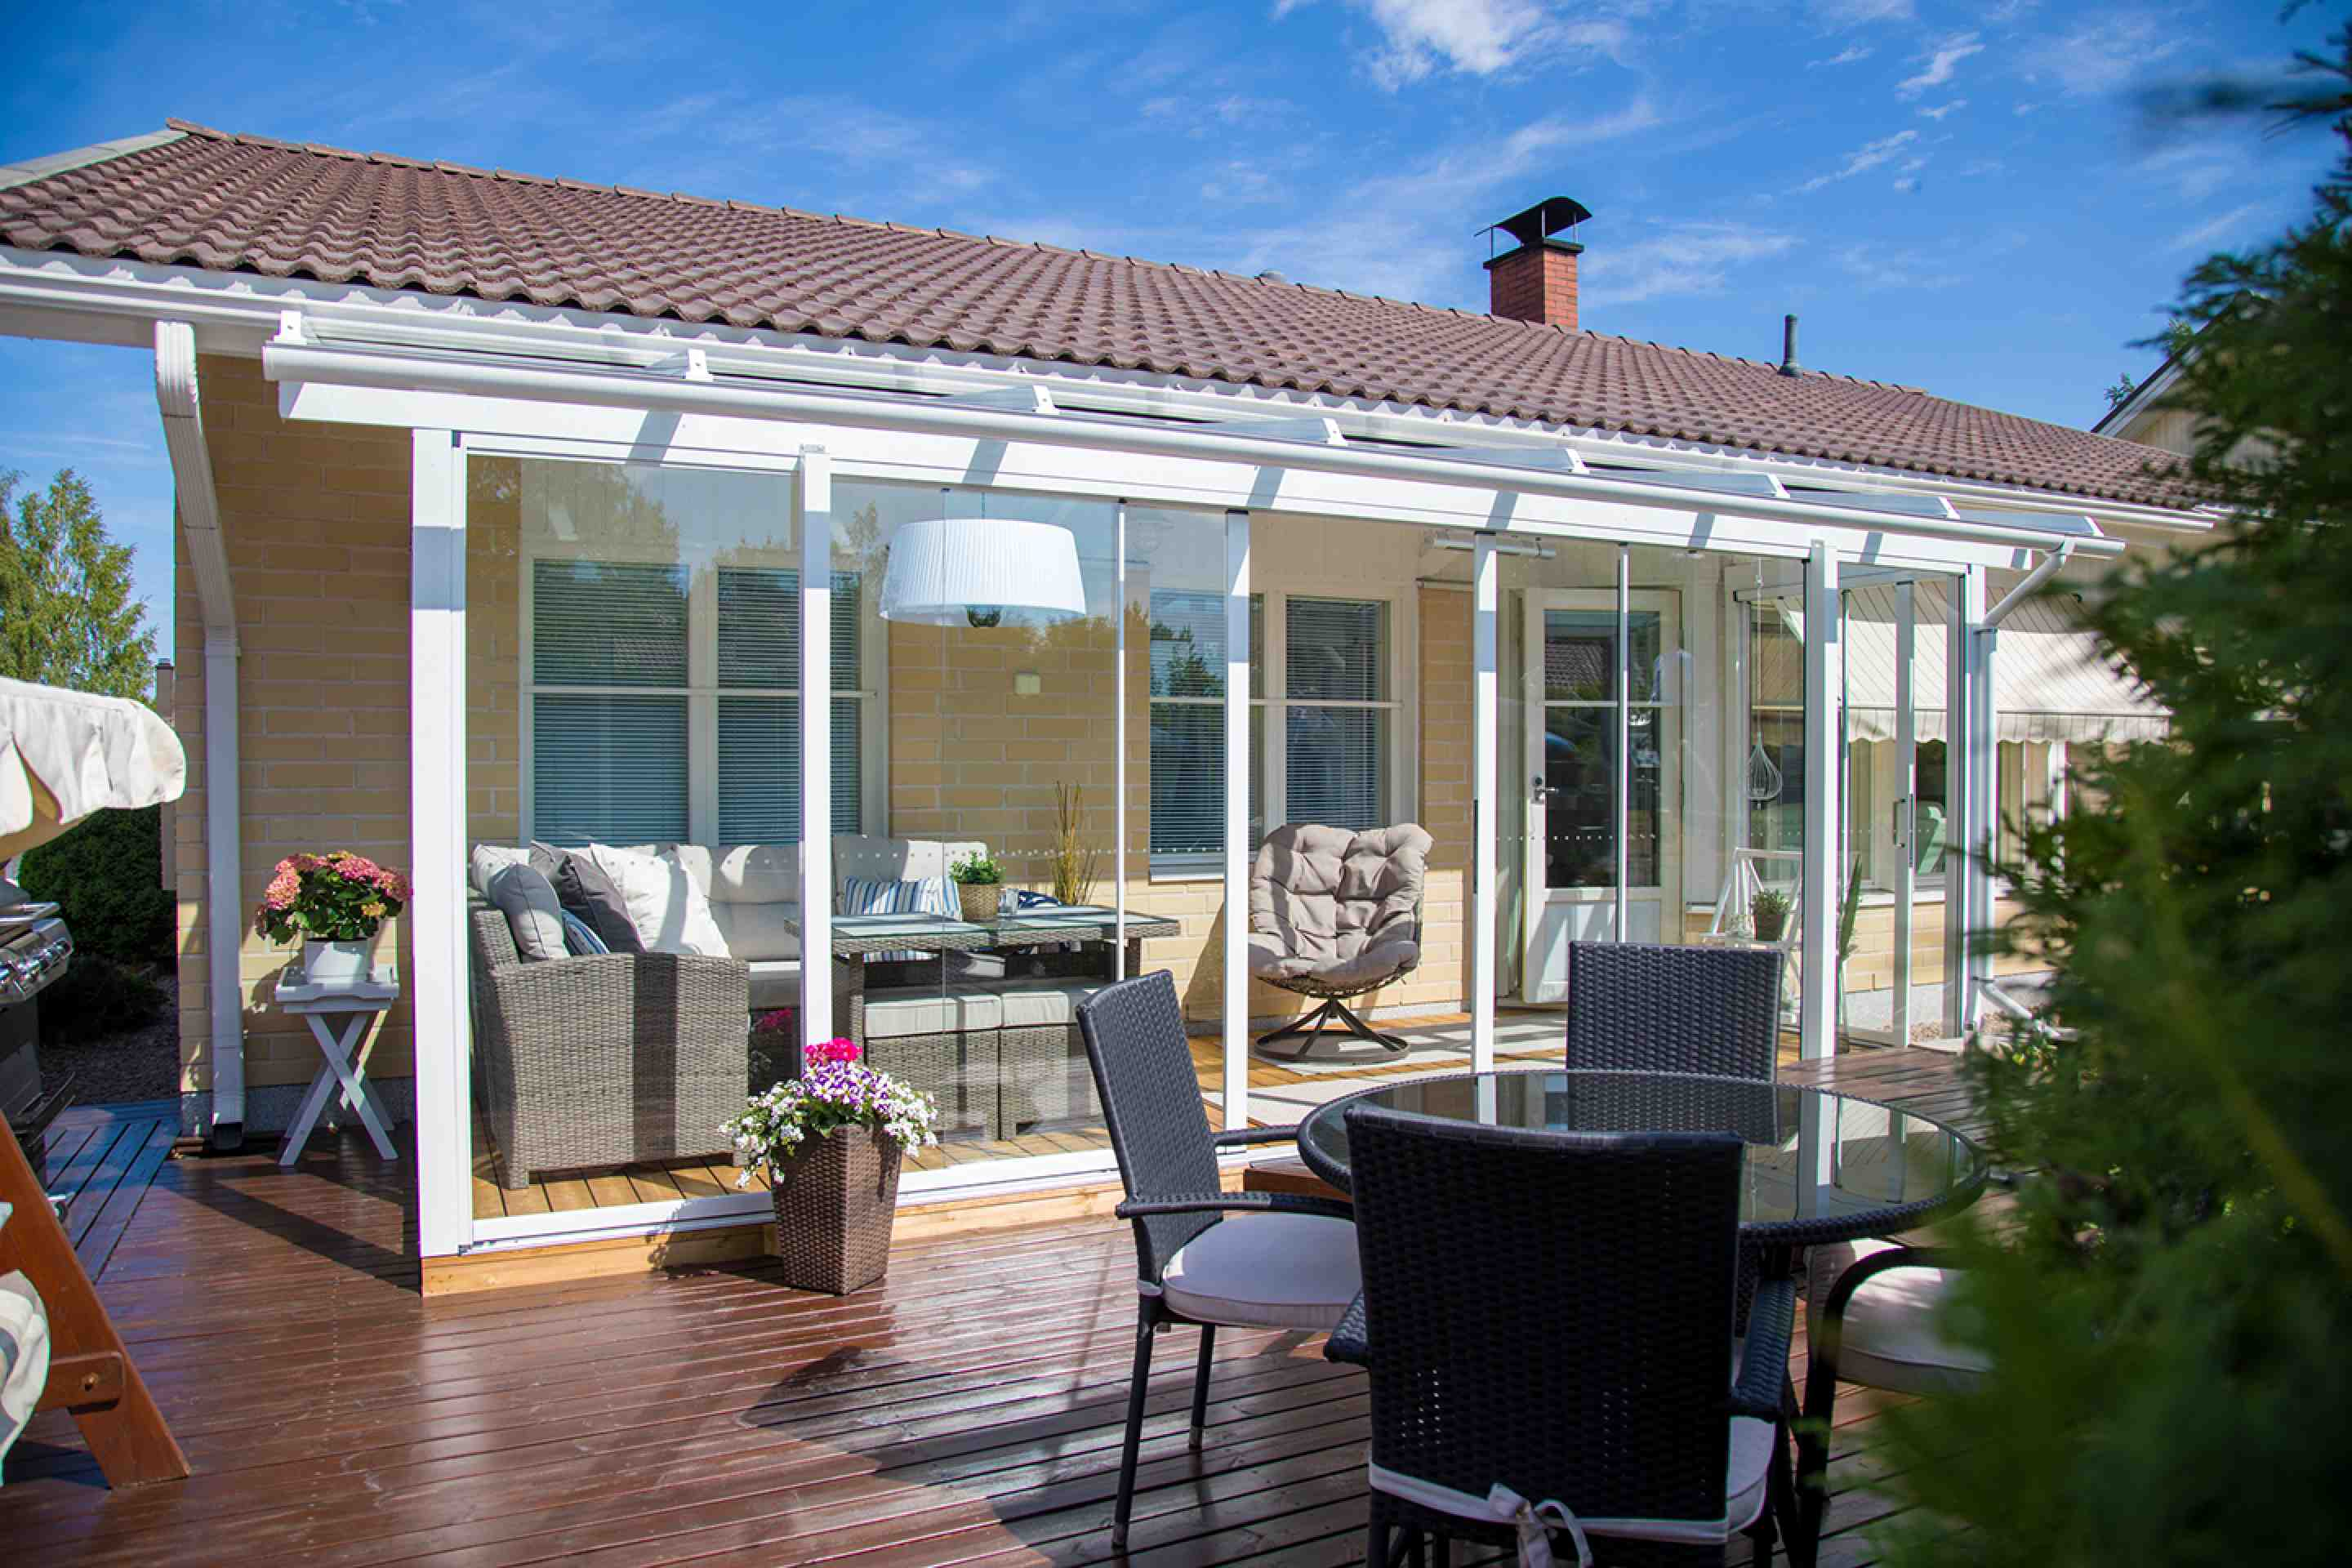 sunrooms, sunrooms in canada, sunrooms in toronto, sunrooms in hamilton, sunrooms in vancouver, frameless retractable glass sunrooms, lumon canada